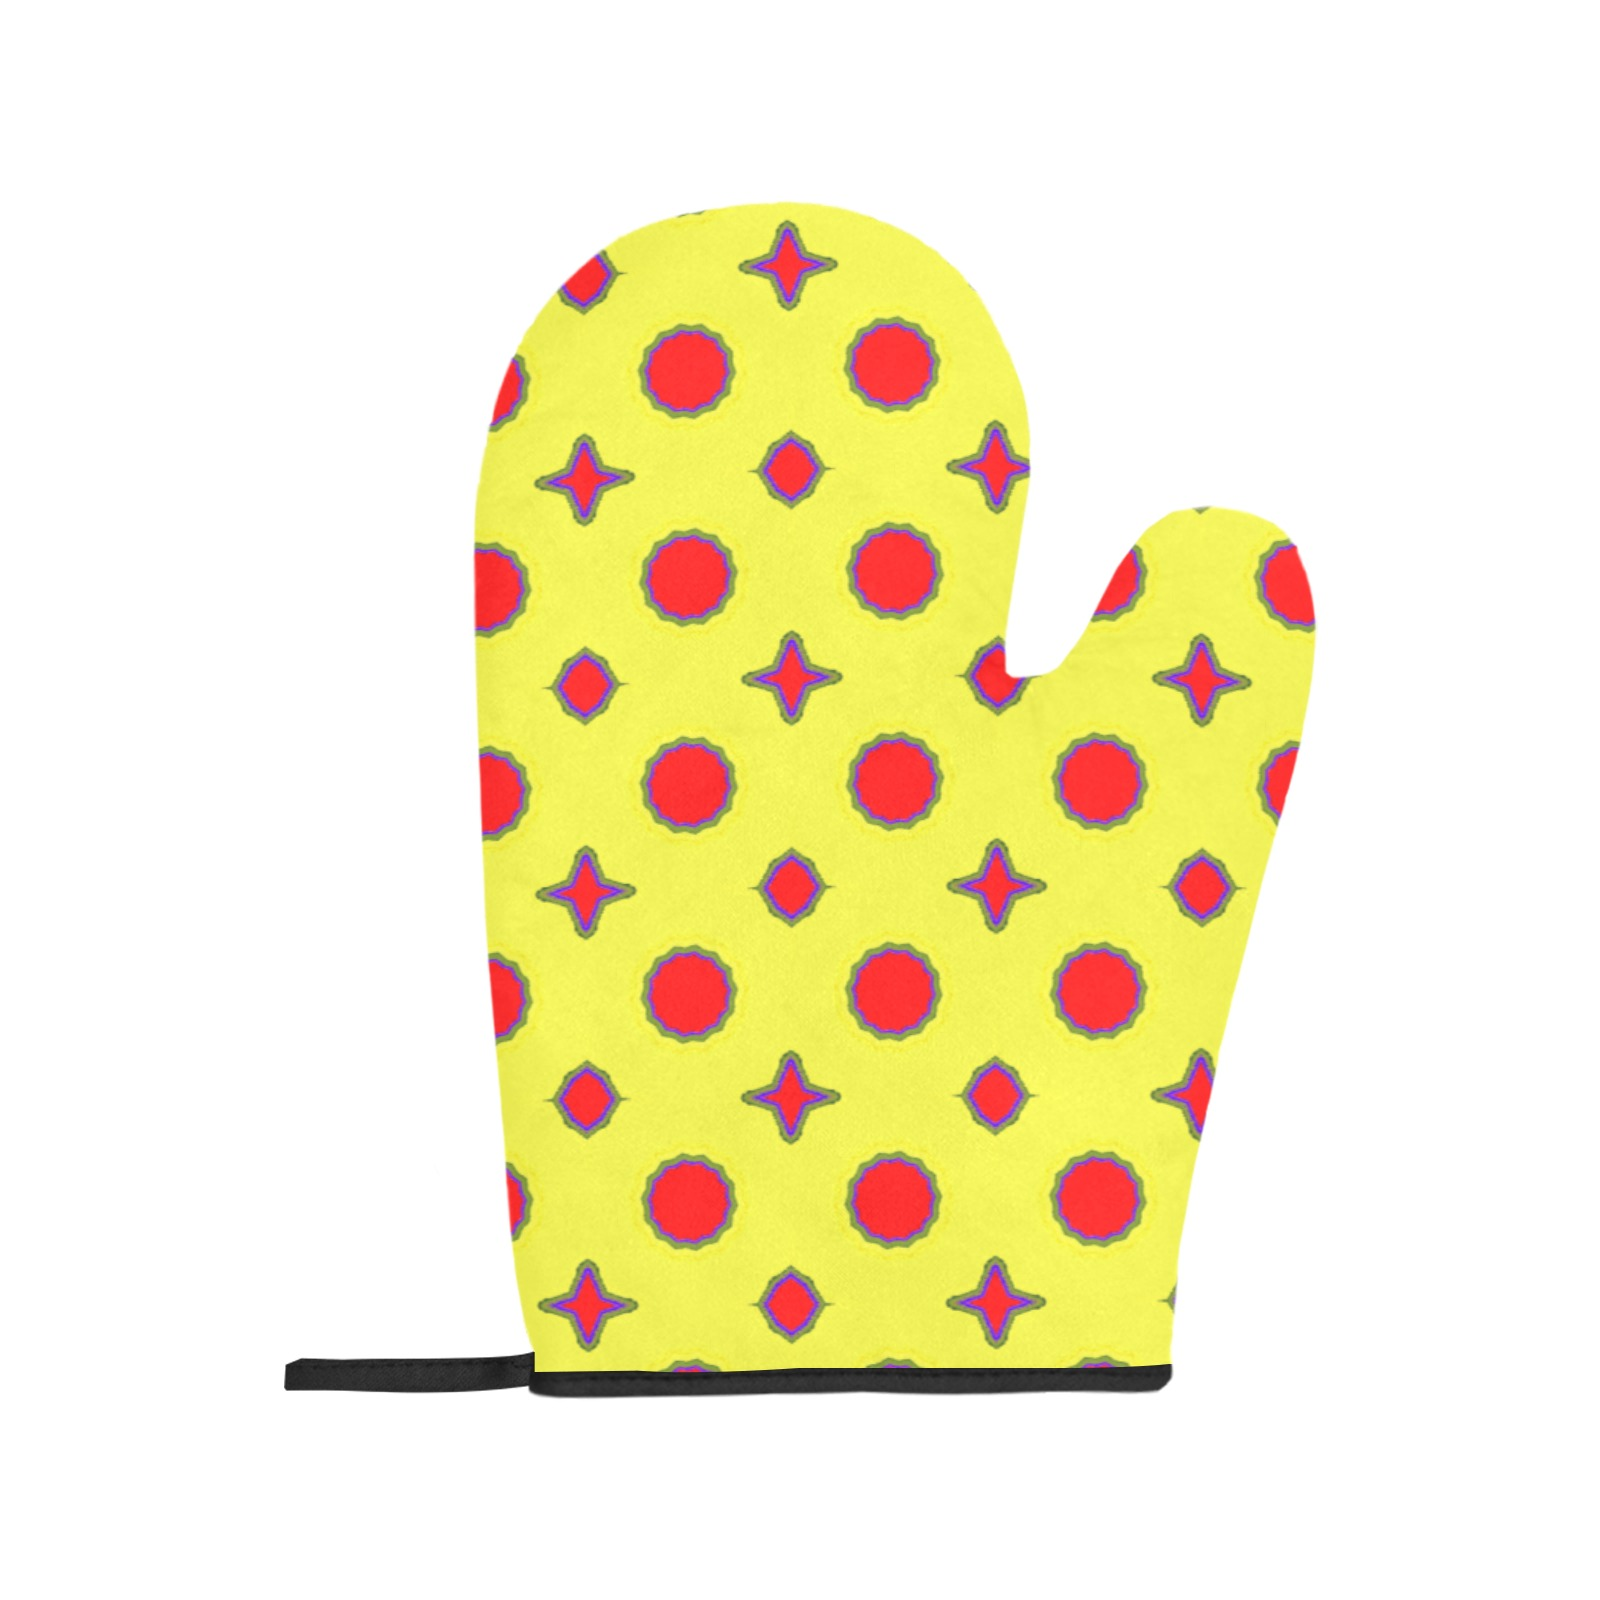 YCC r Oven Mitt (Two Pieces)